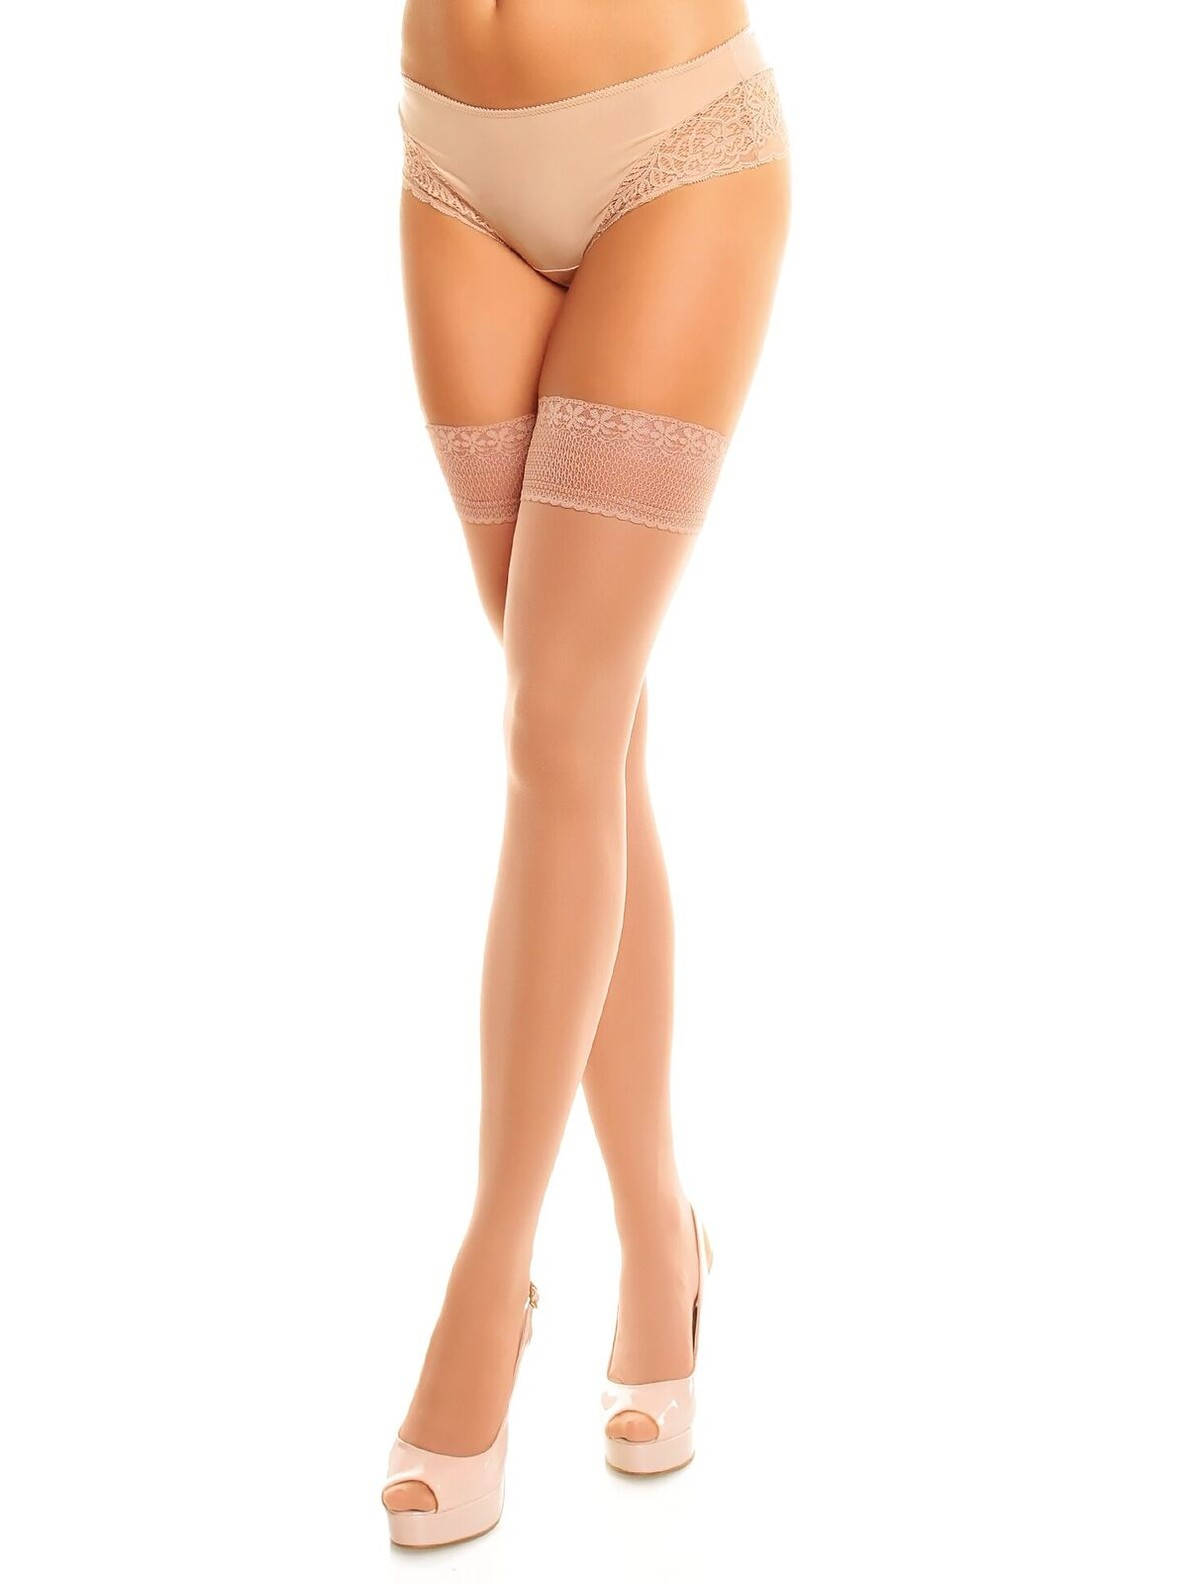 df5552e53 ... Glamory Vital 40 Support Hold-Ups teint